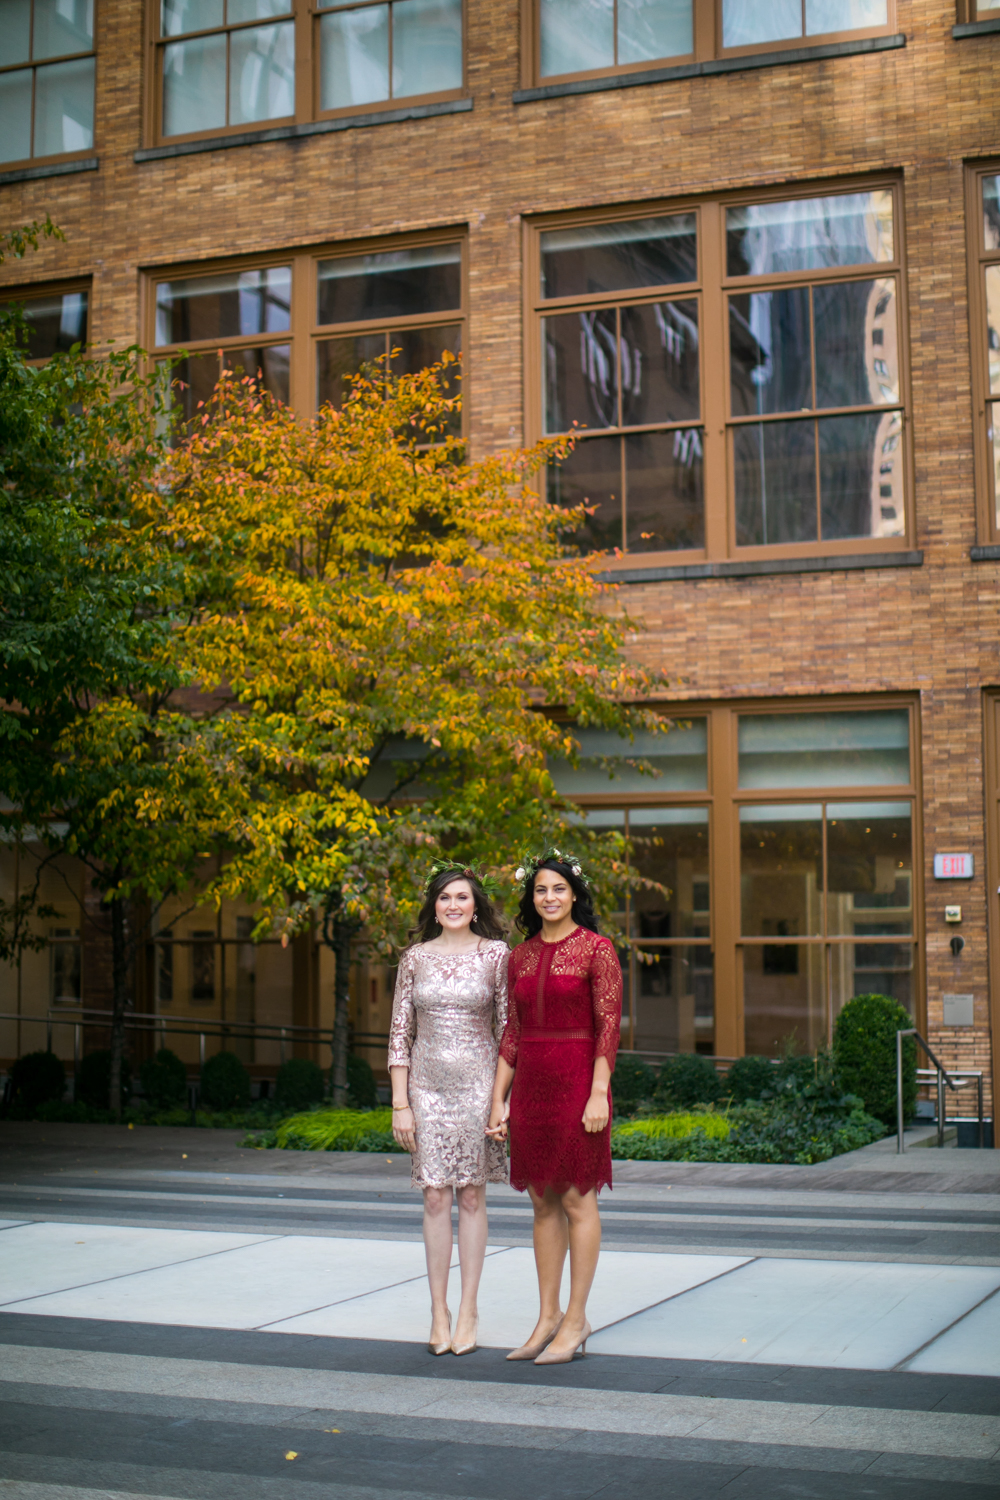 Portrait of brides holding hands on the sidewalk.